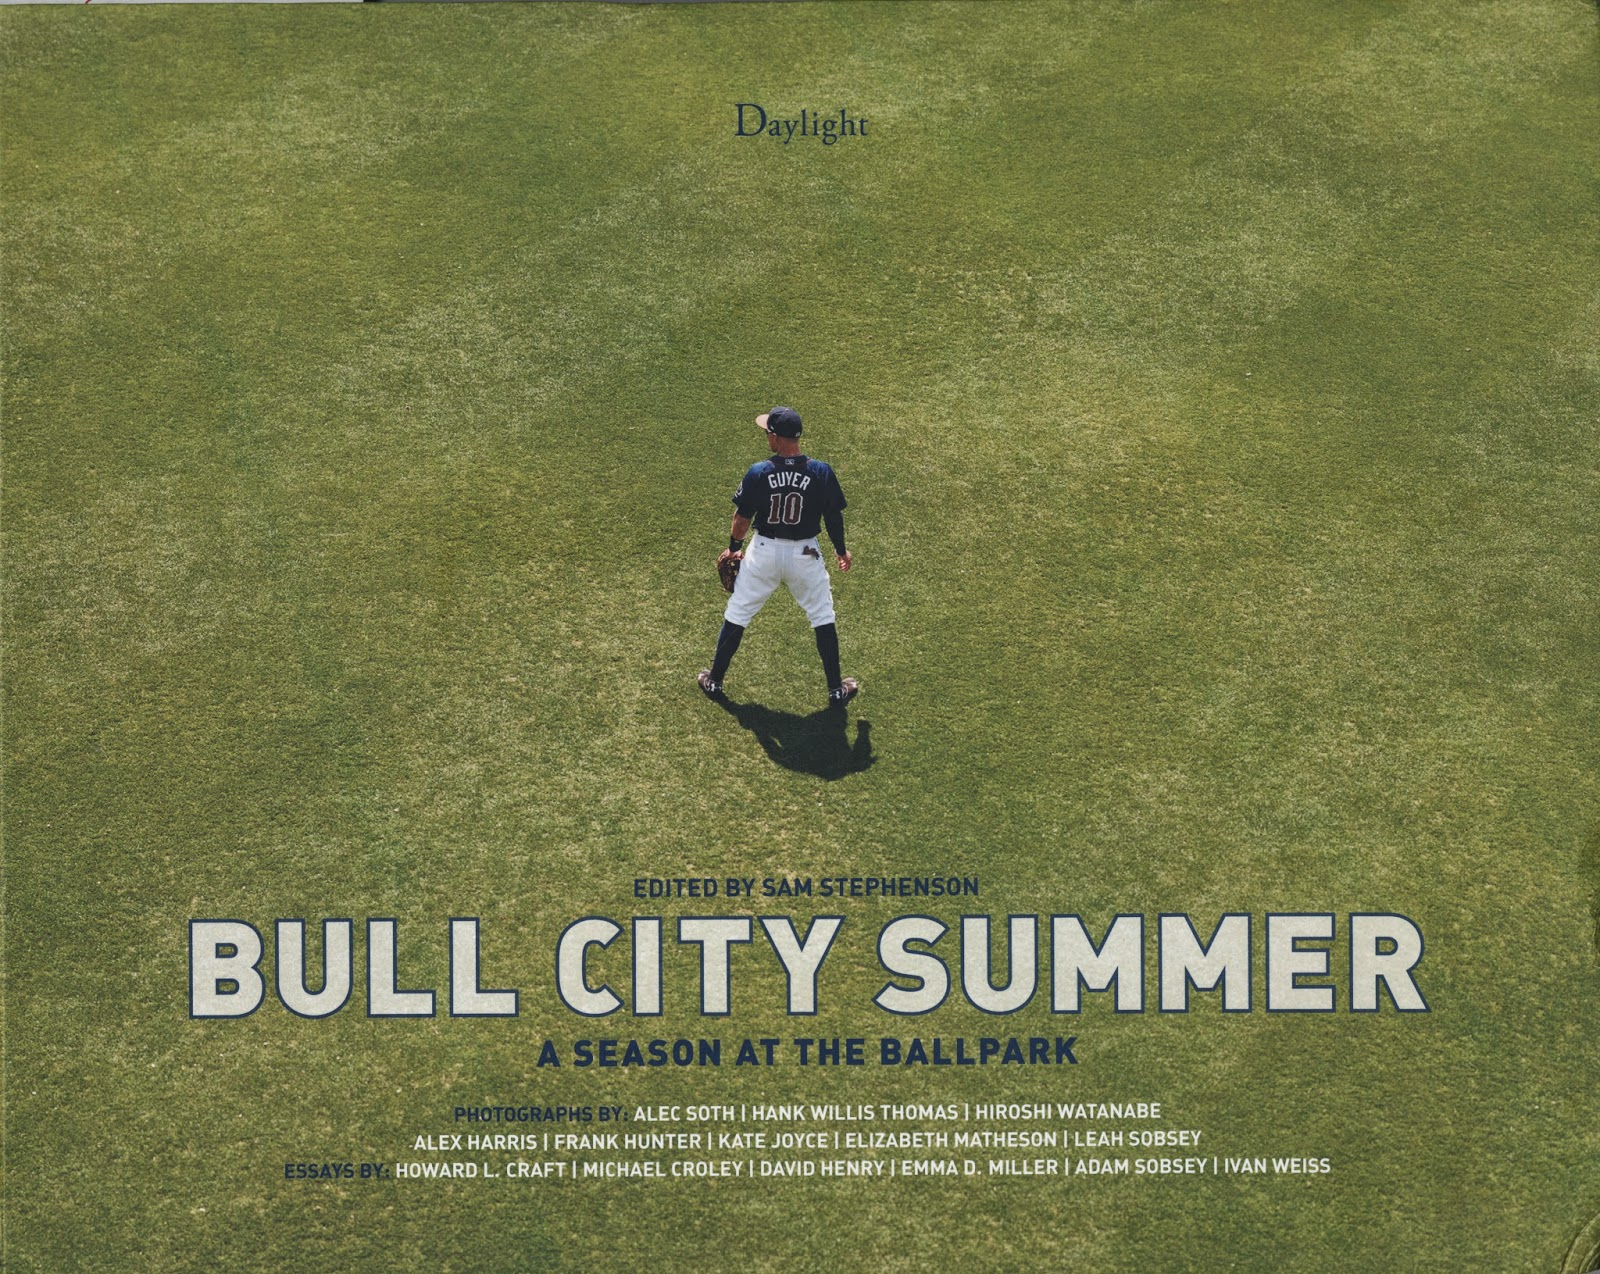 recent faculty publications at uncg bull city summer a season at the ballpark